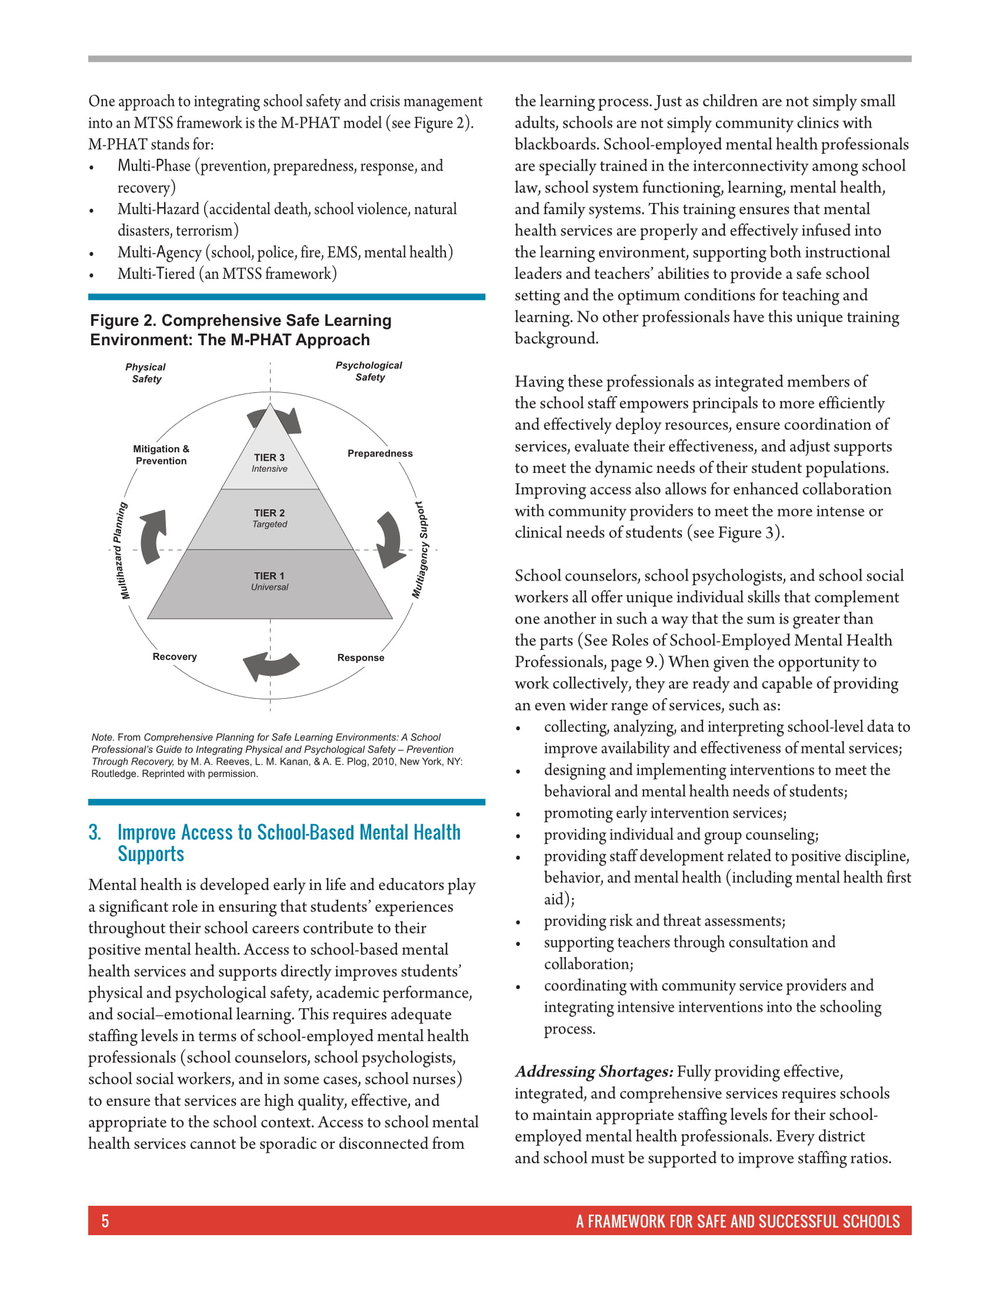 Framework_for_Safe_and_Successful_School_Environments (1)-06.jpg